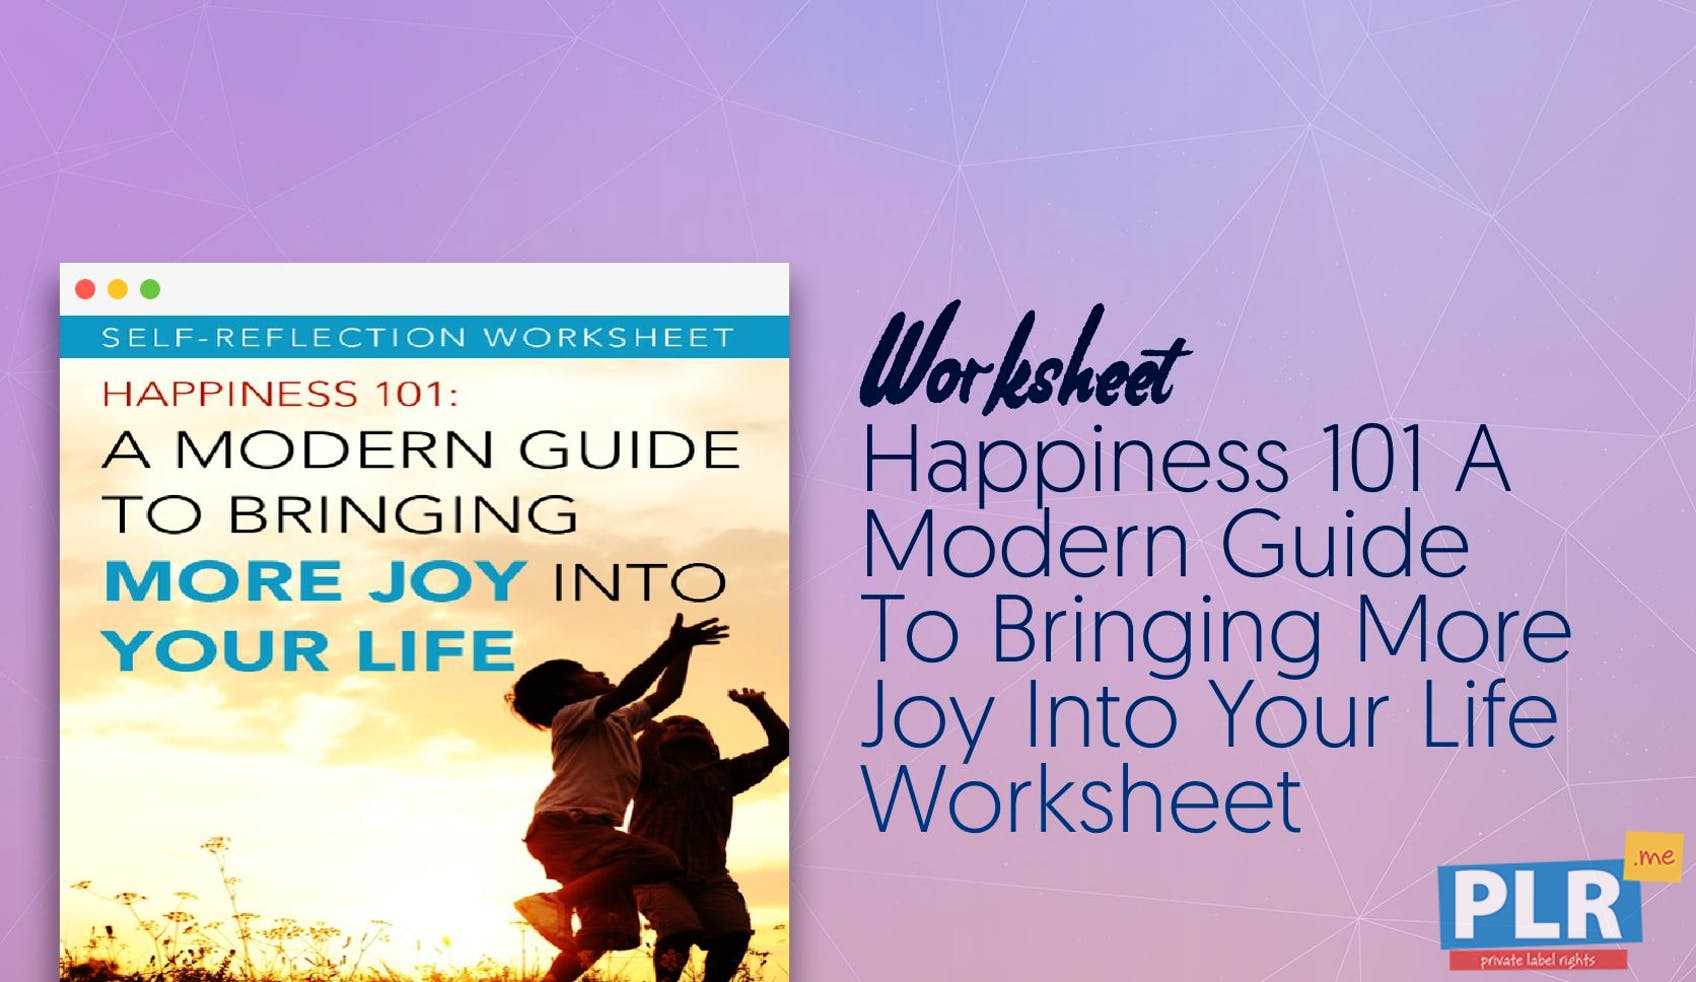 Happiness 101 A Modern Guide To Bringing More Joy Into Your Life Worksheet